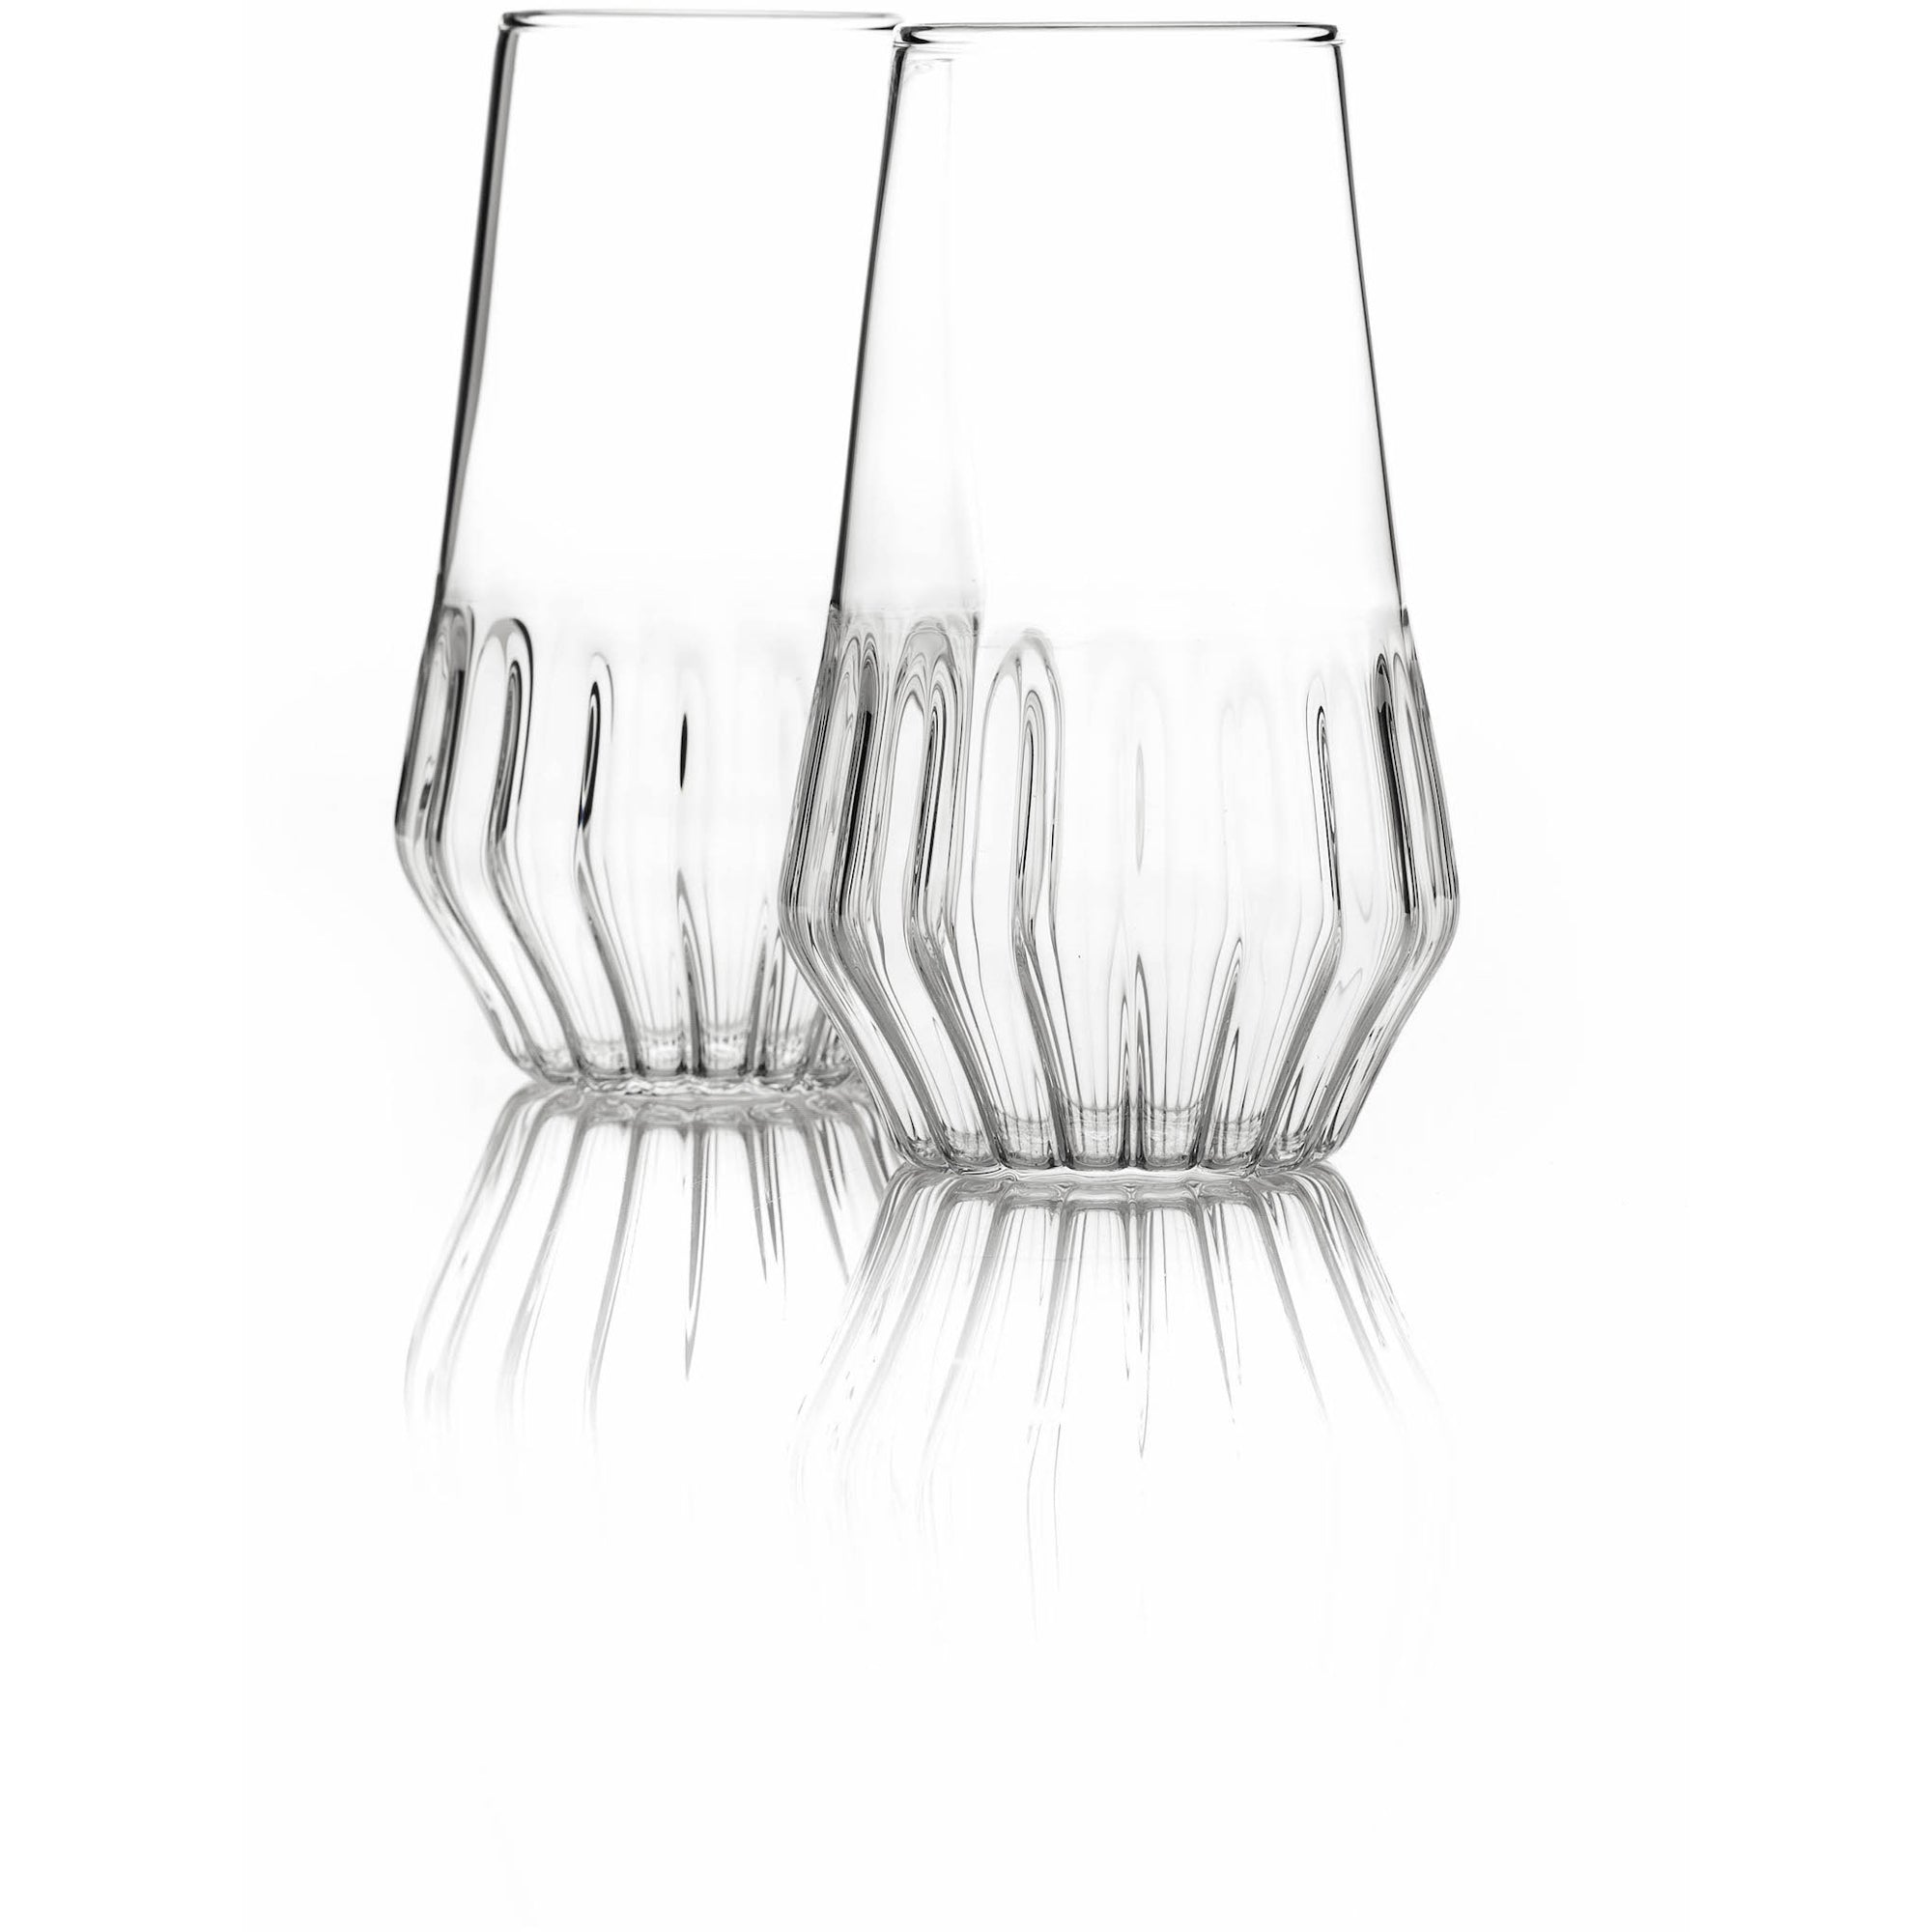 Mixed Flute Glass - Set of 2